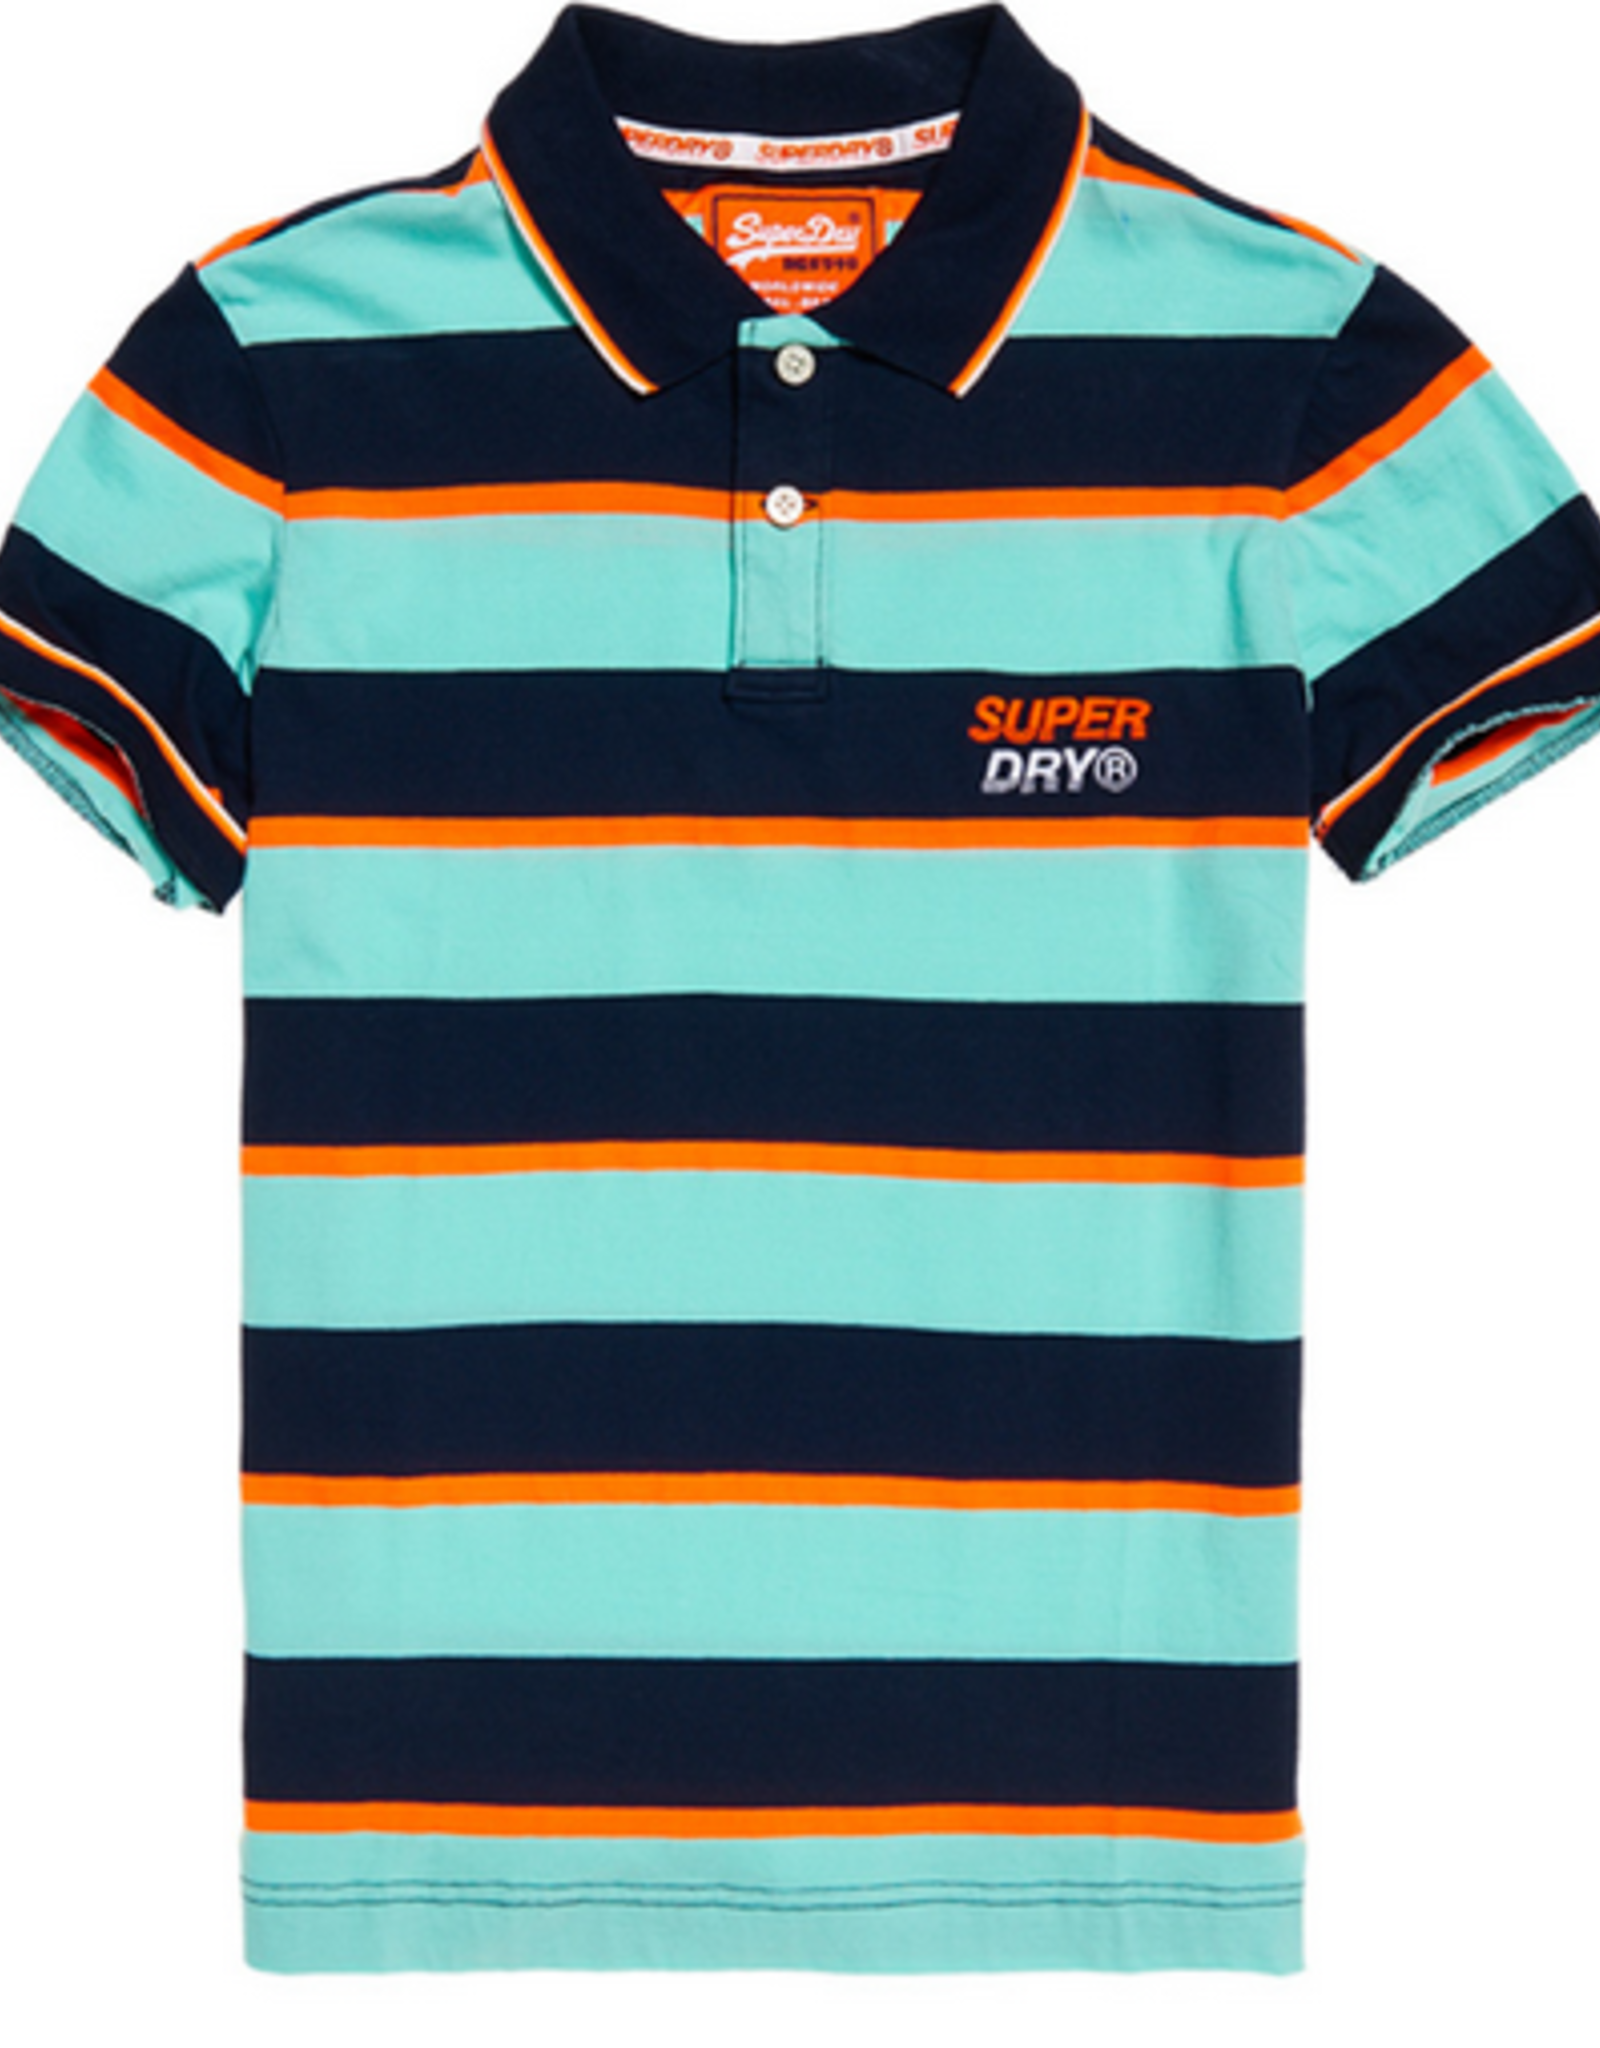 Superdry SD SKATE LUX POLO